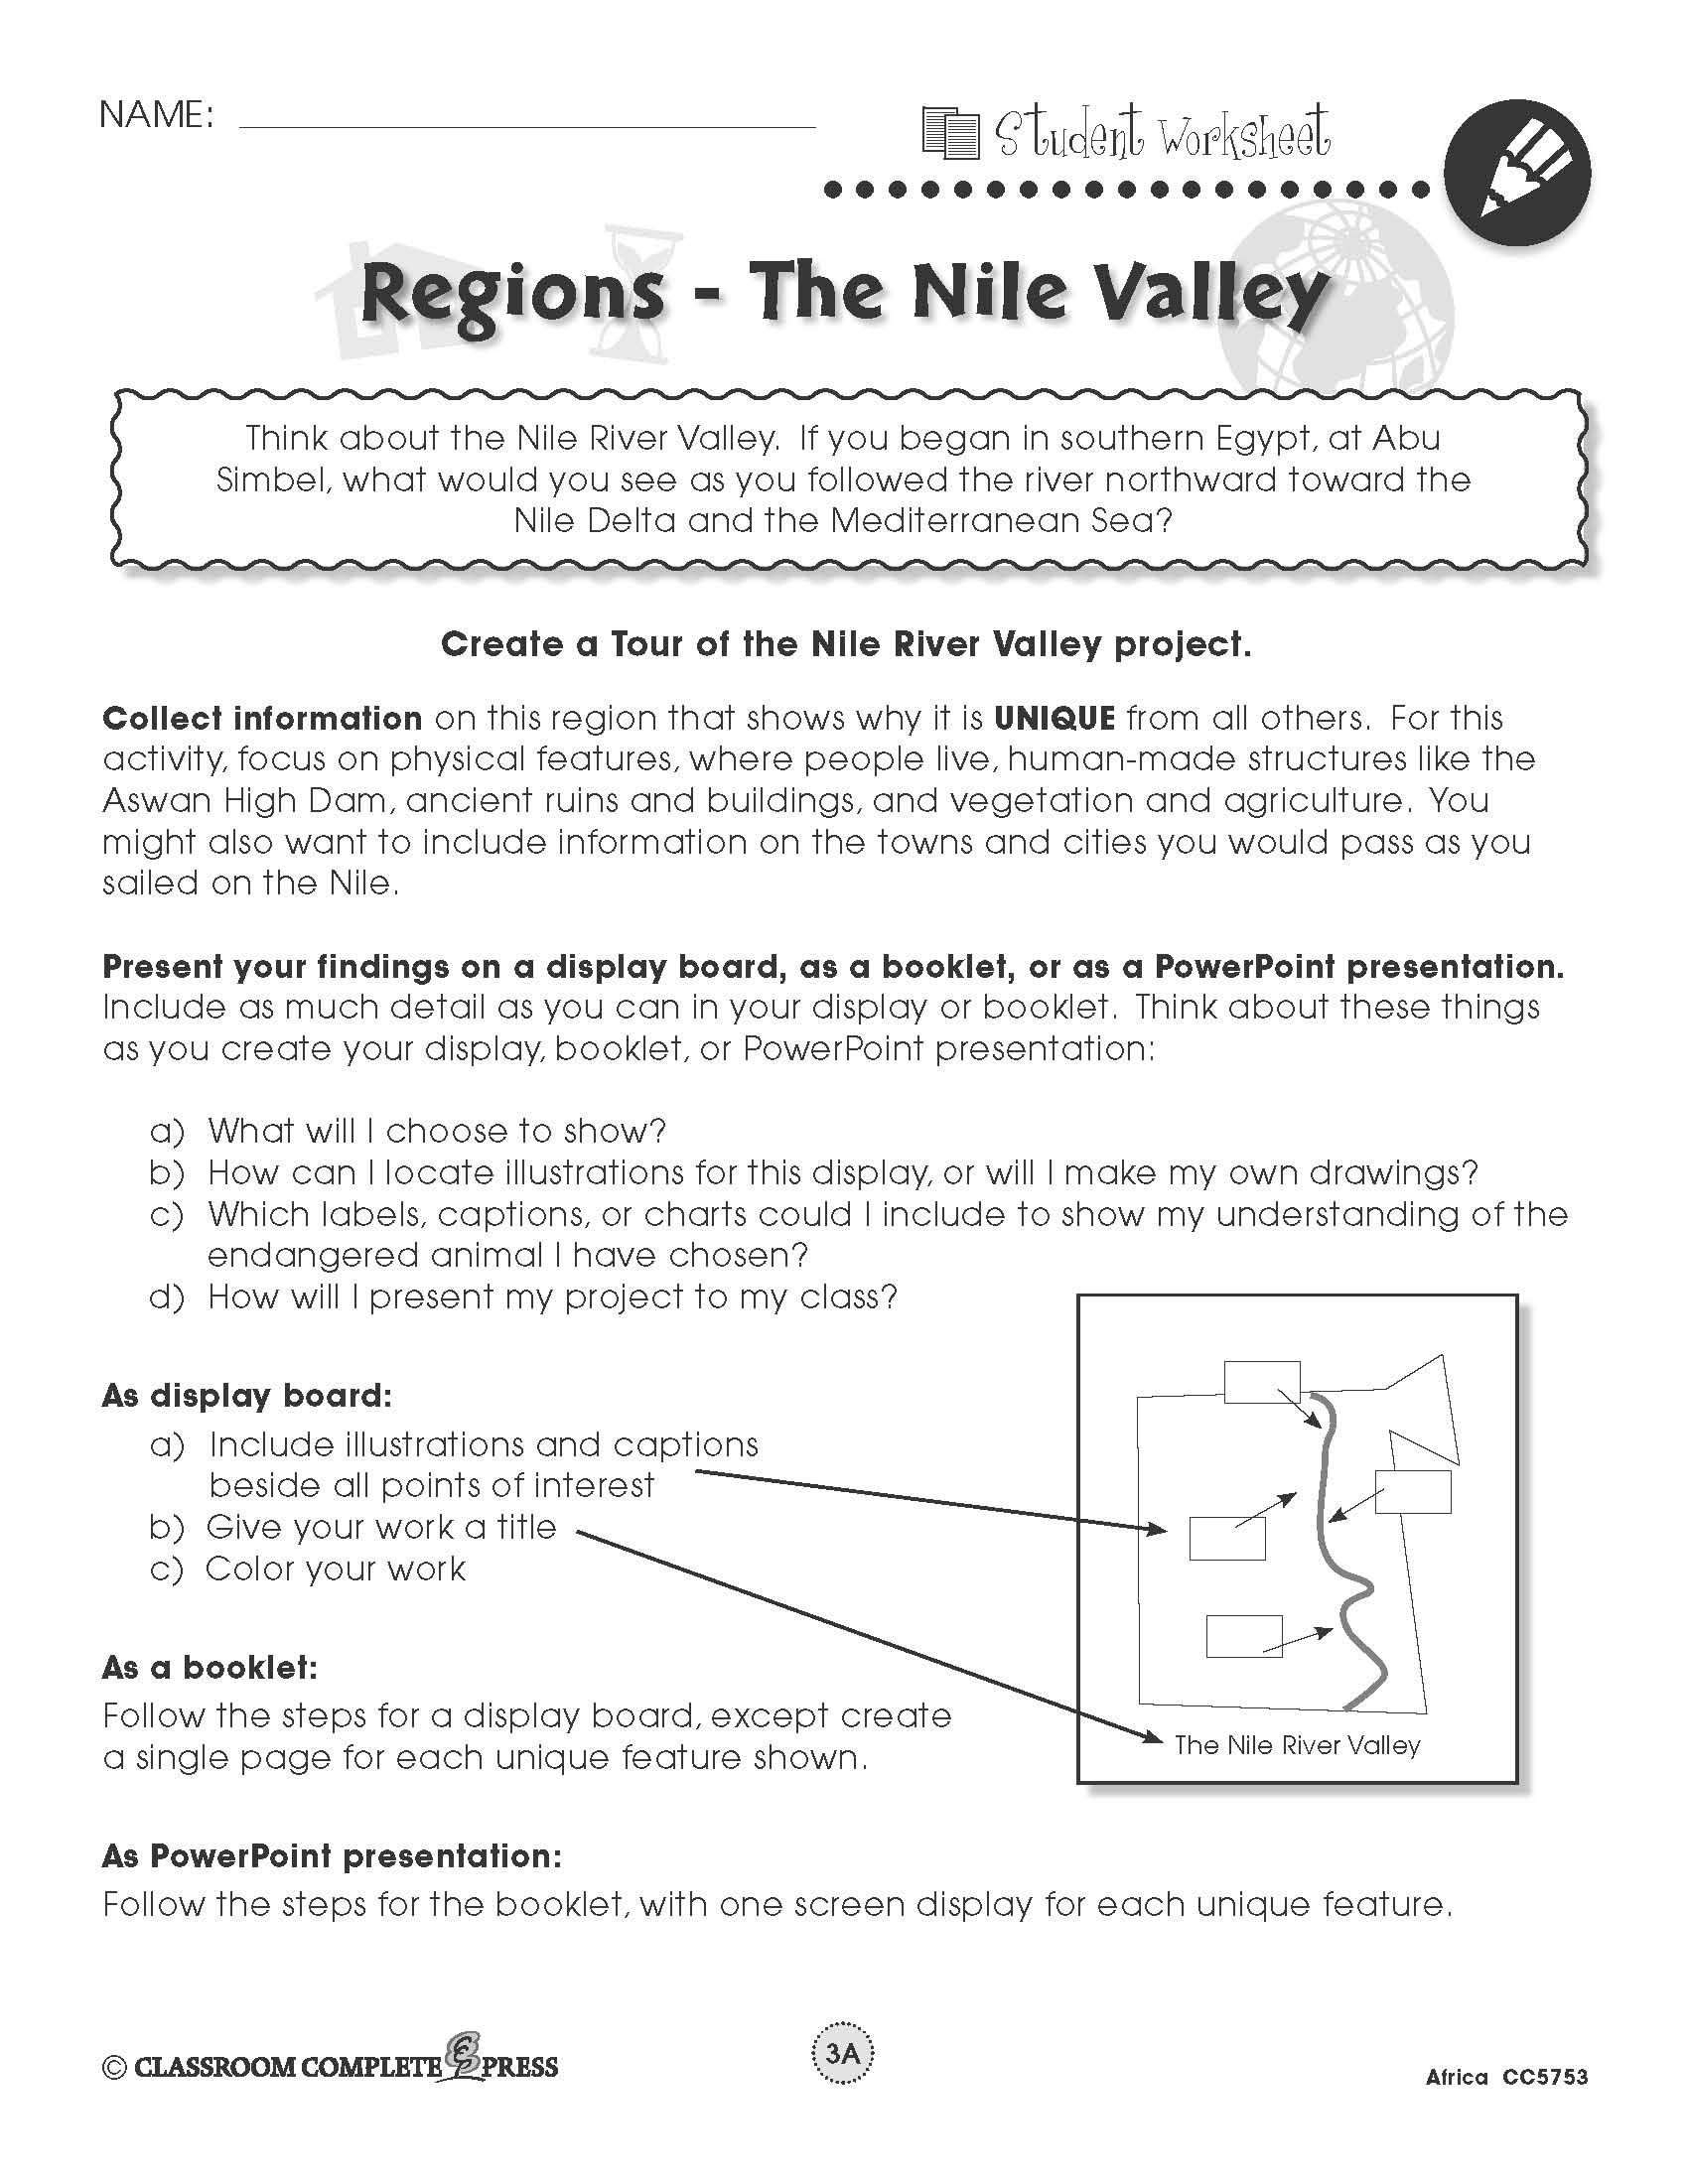 Create A Tour Of The Nile River Valley In Egypt With This